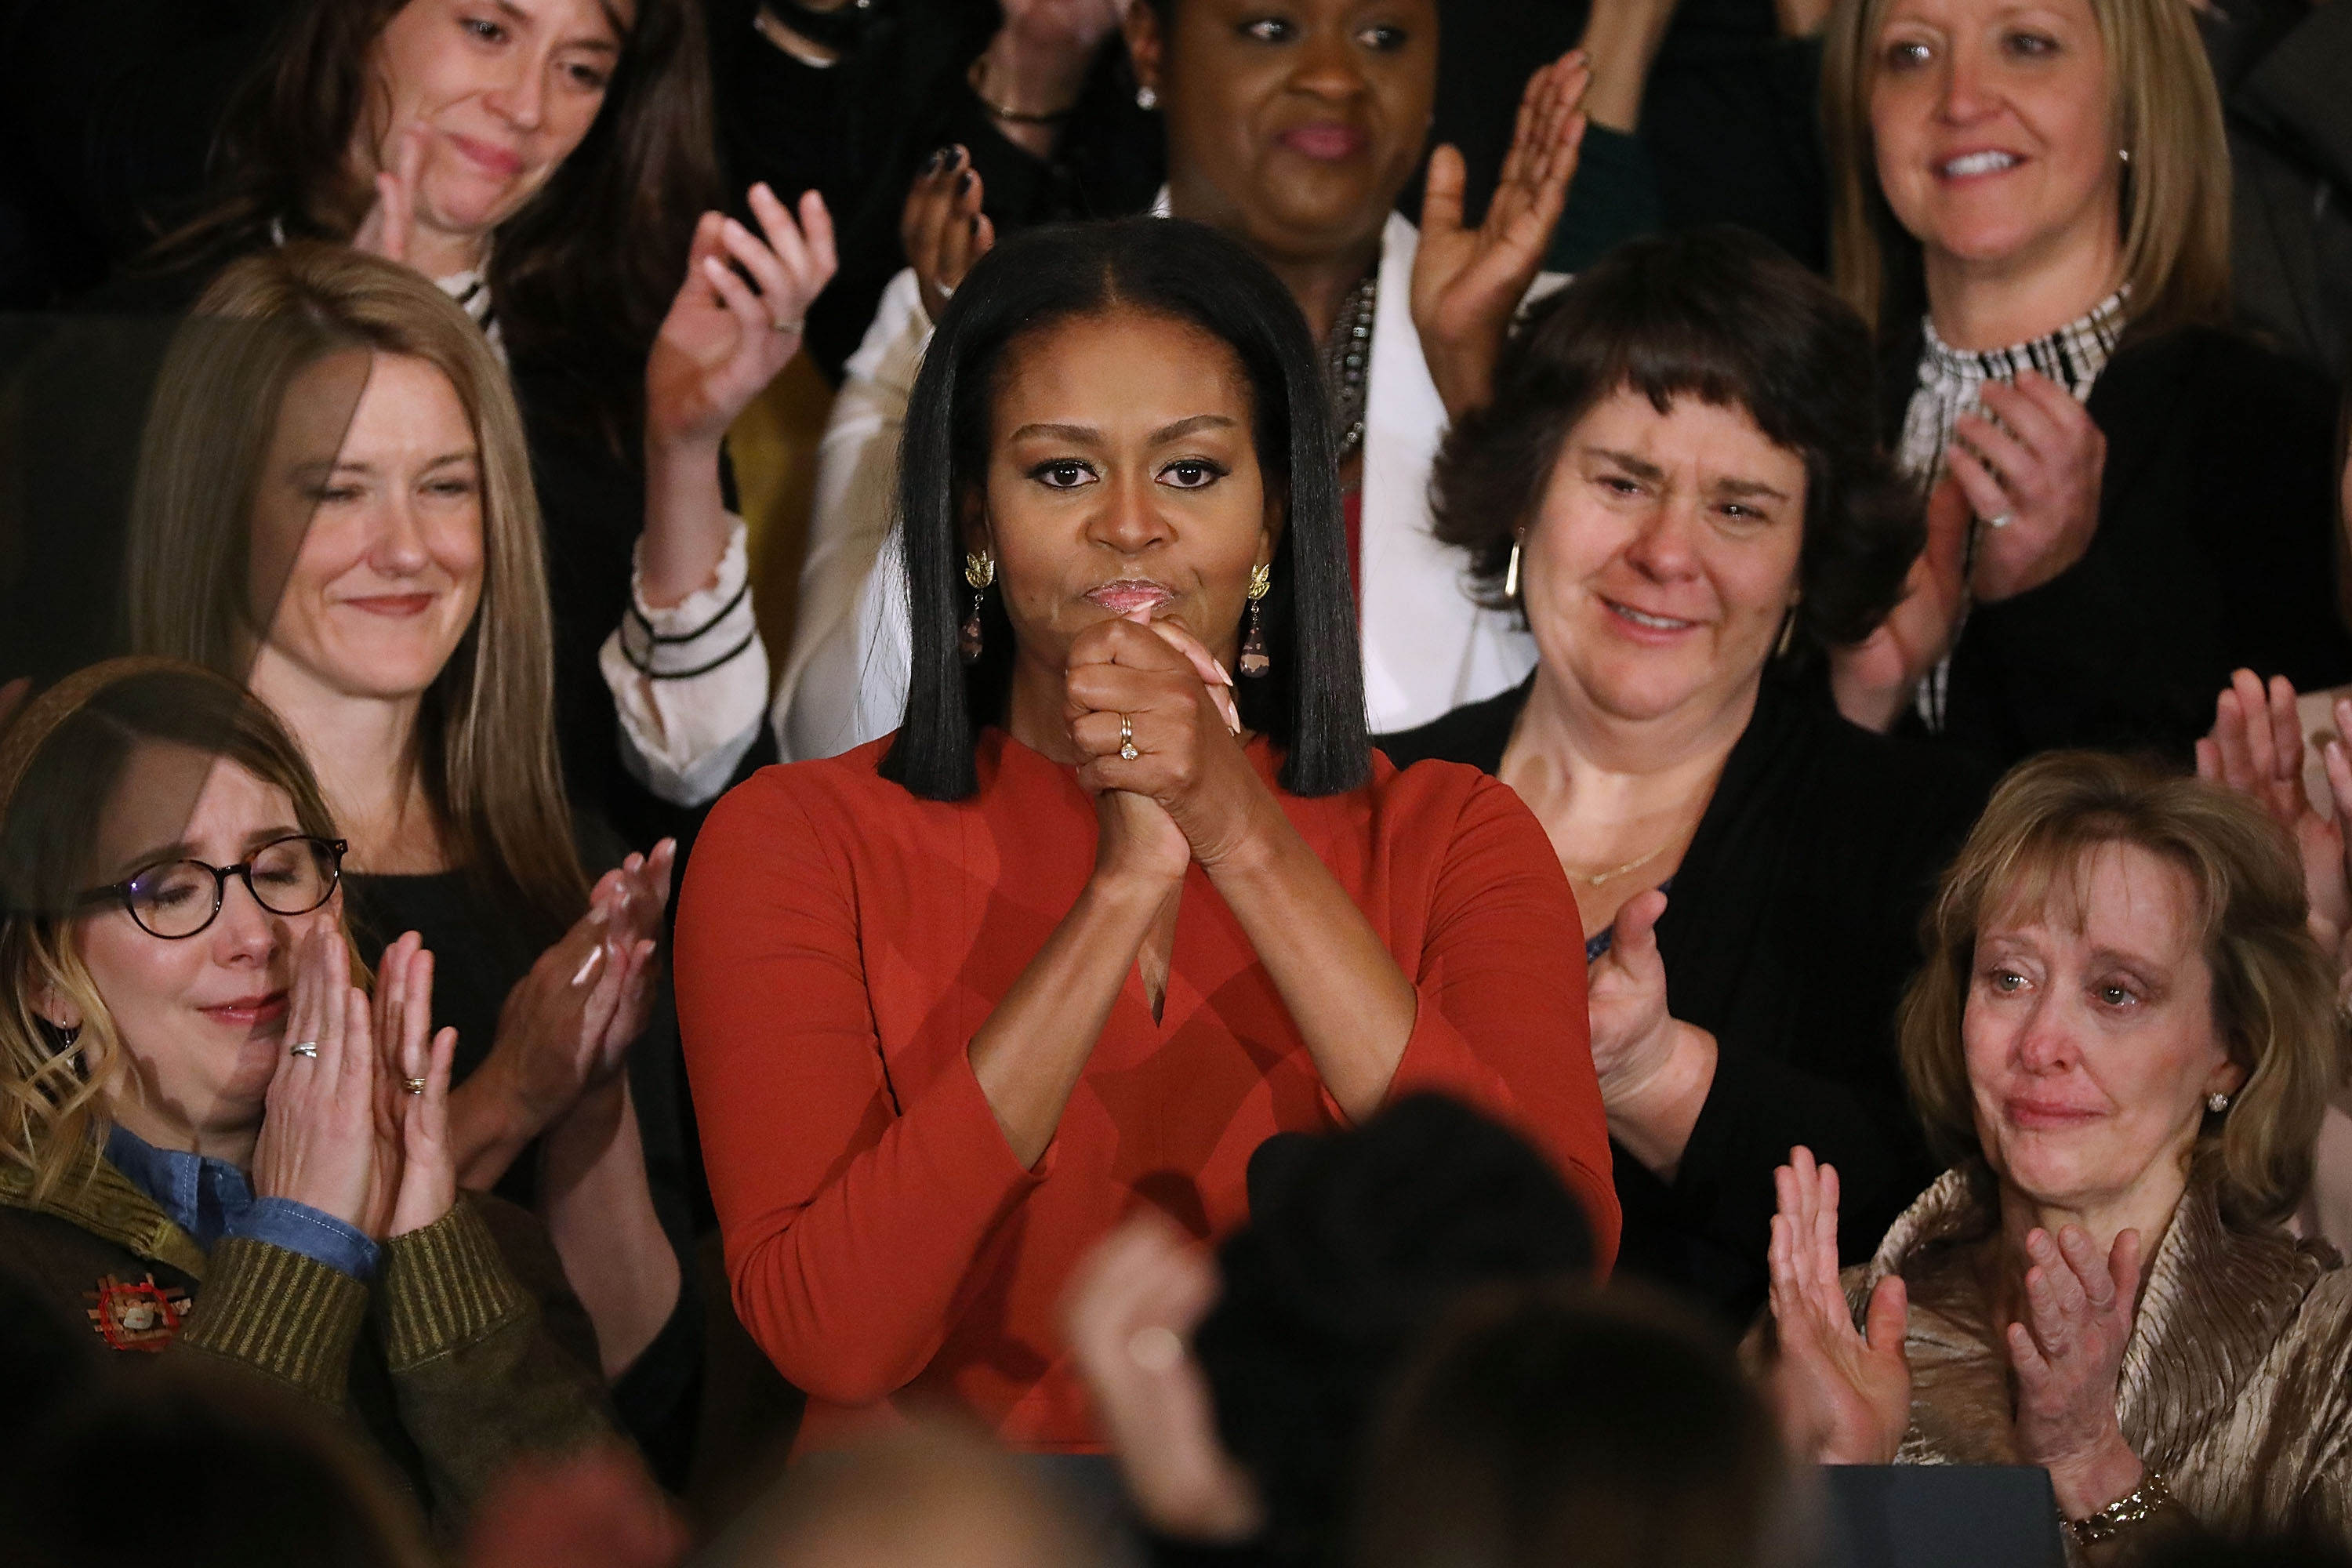 Michelle Obama's last speech as first lady was a tearful, impassioned defense of American diversity